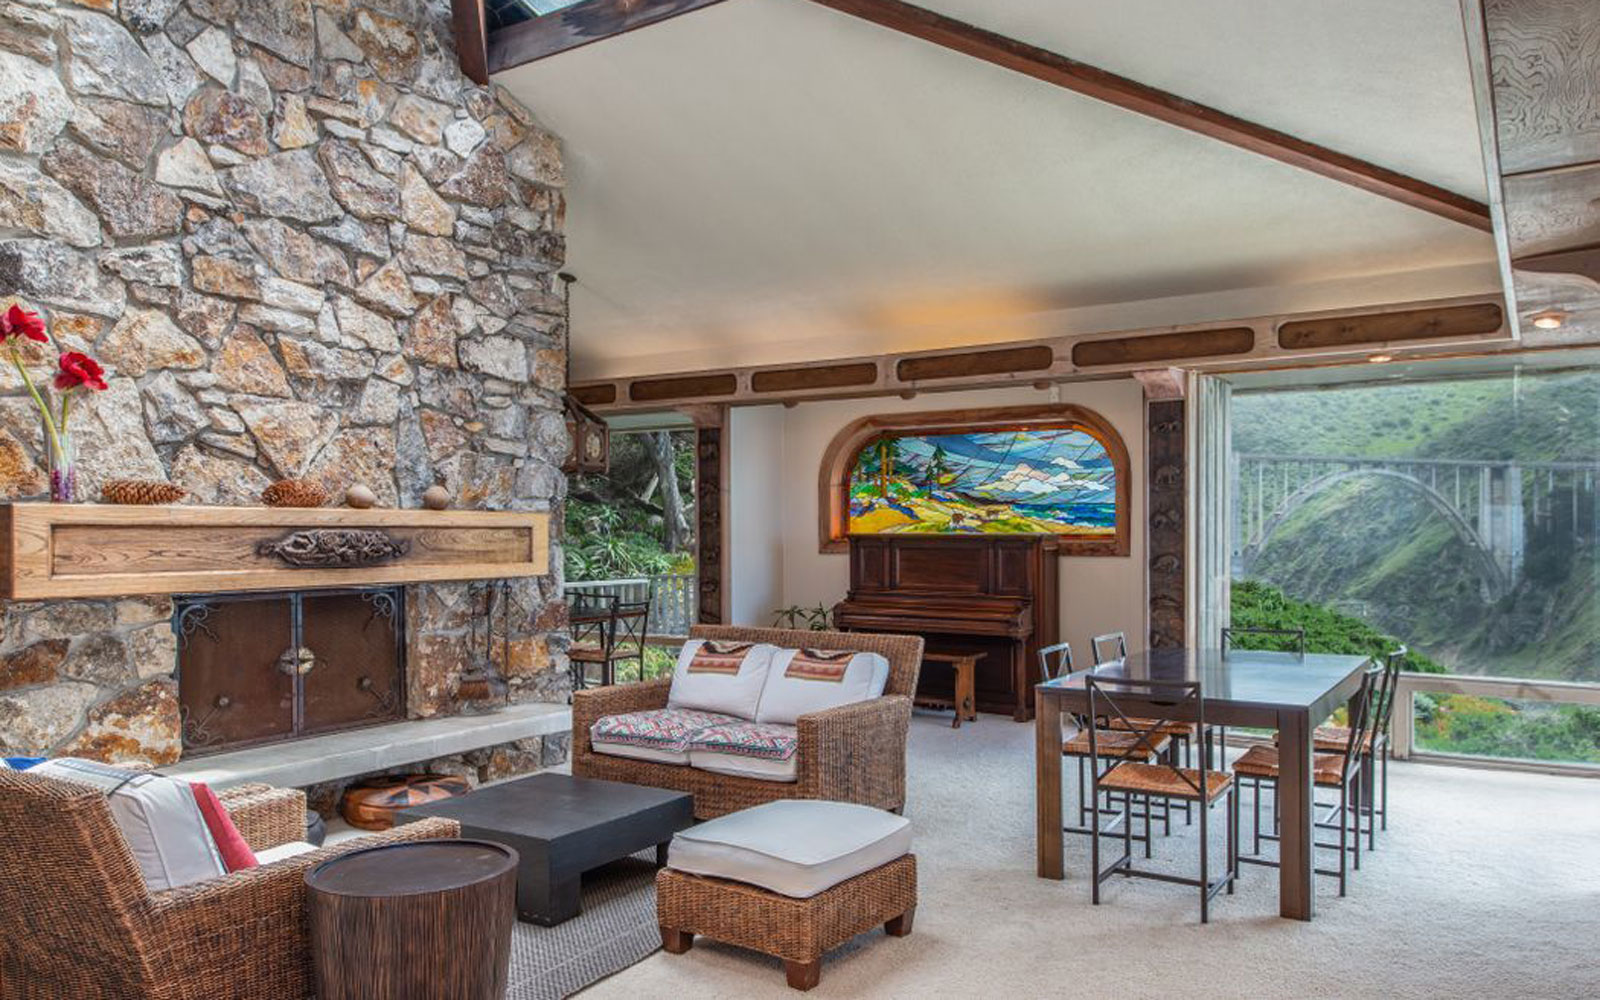 For Sale: A California Dream House With the Most Iconic View of Big Sur